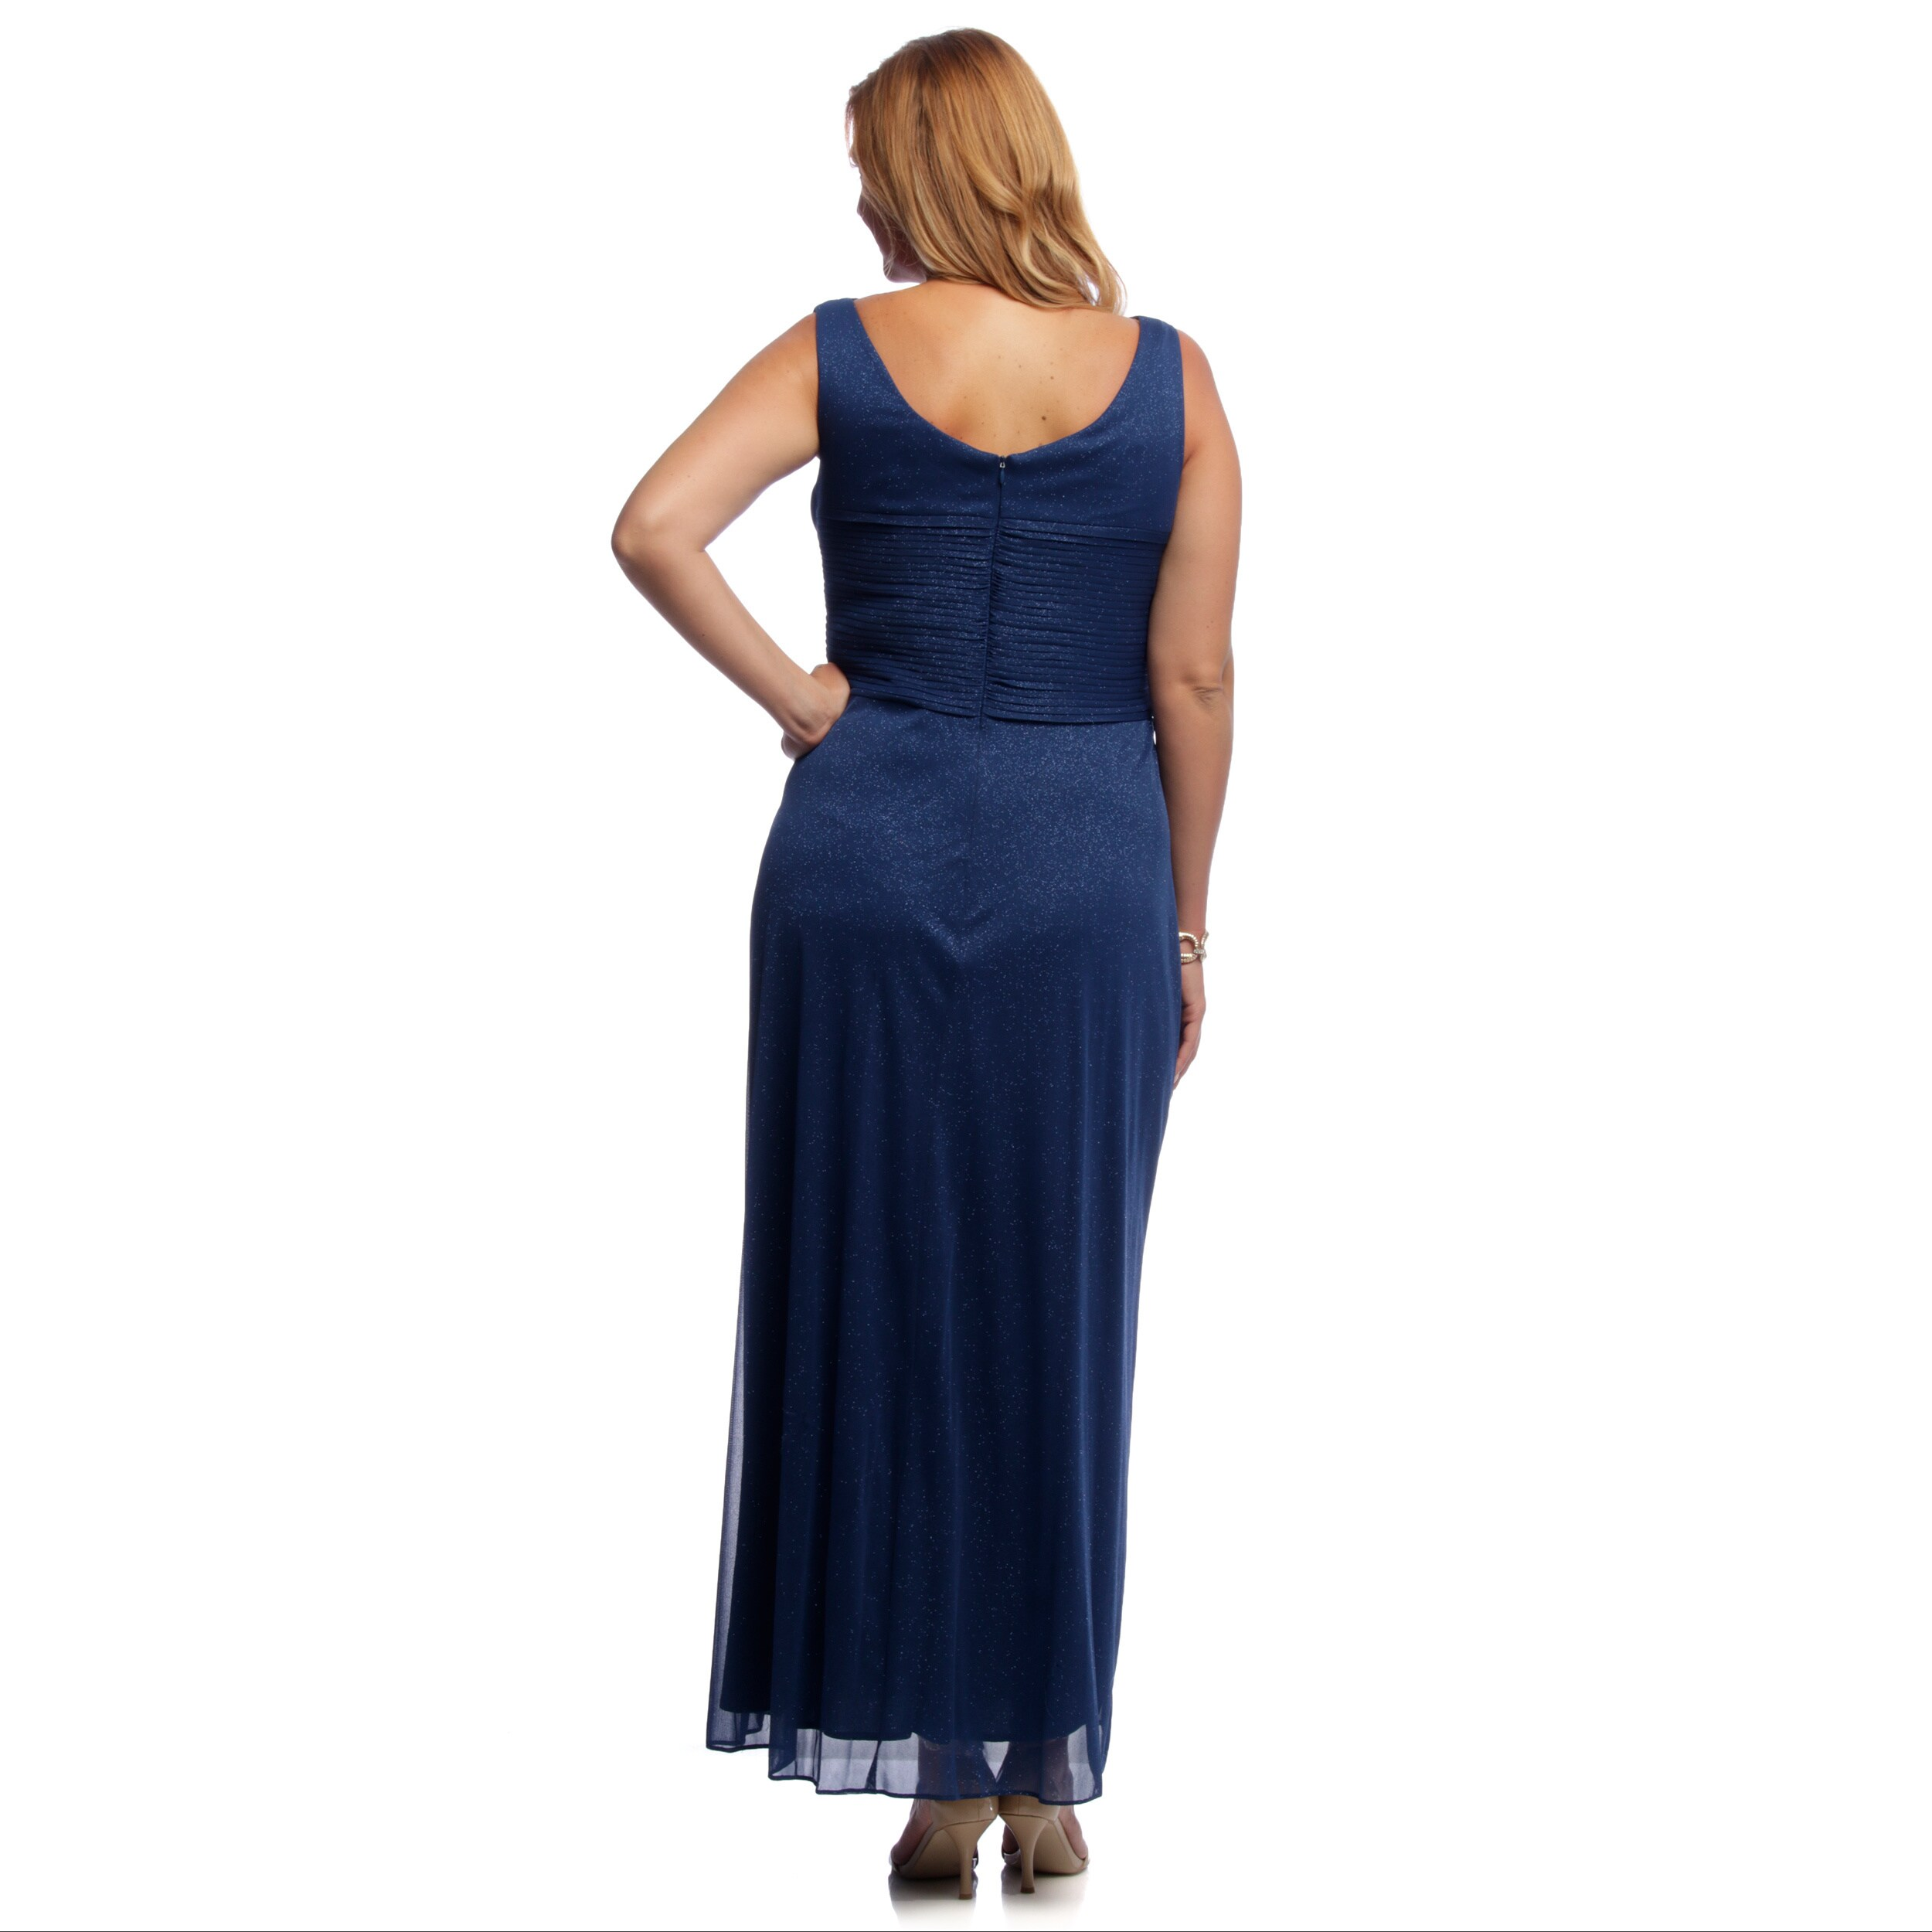 36b0a003 Shop Alex Evenings Women's Plus Size Electric Blue Glitter Mesh Evening Gown  - Free Shipping Today - Overstock - 9141923